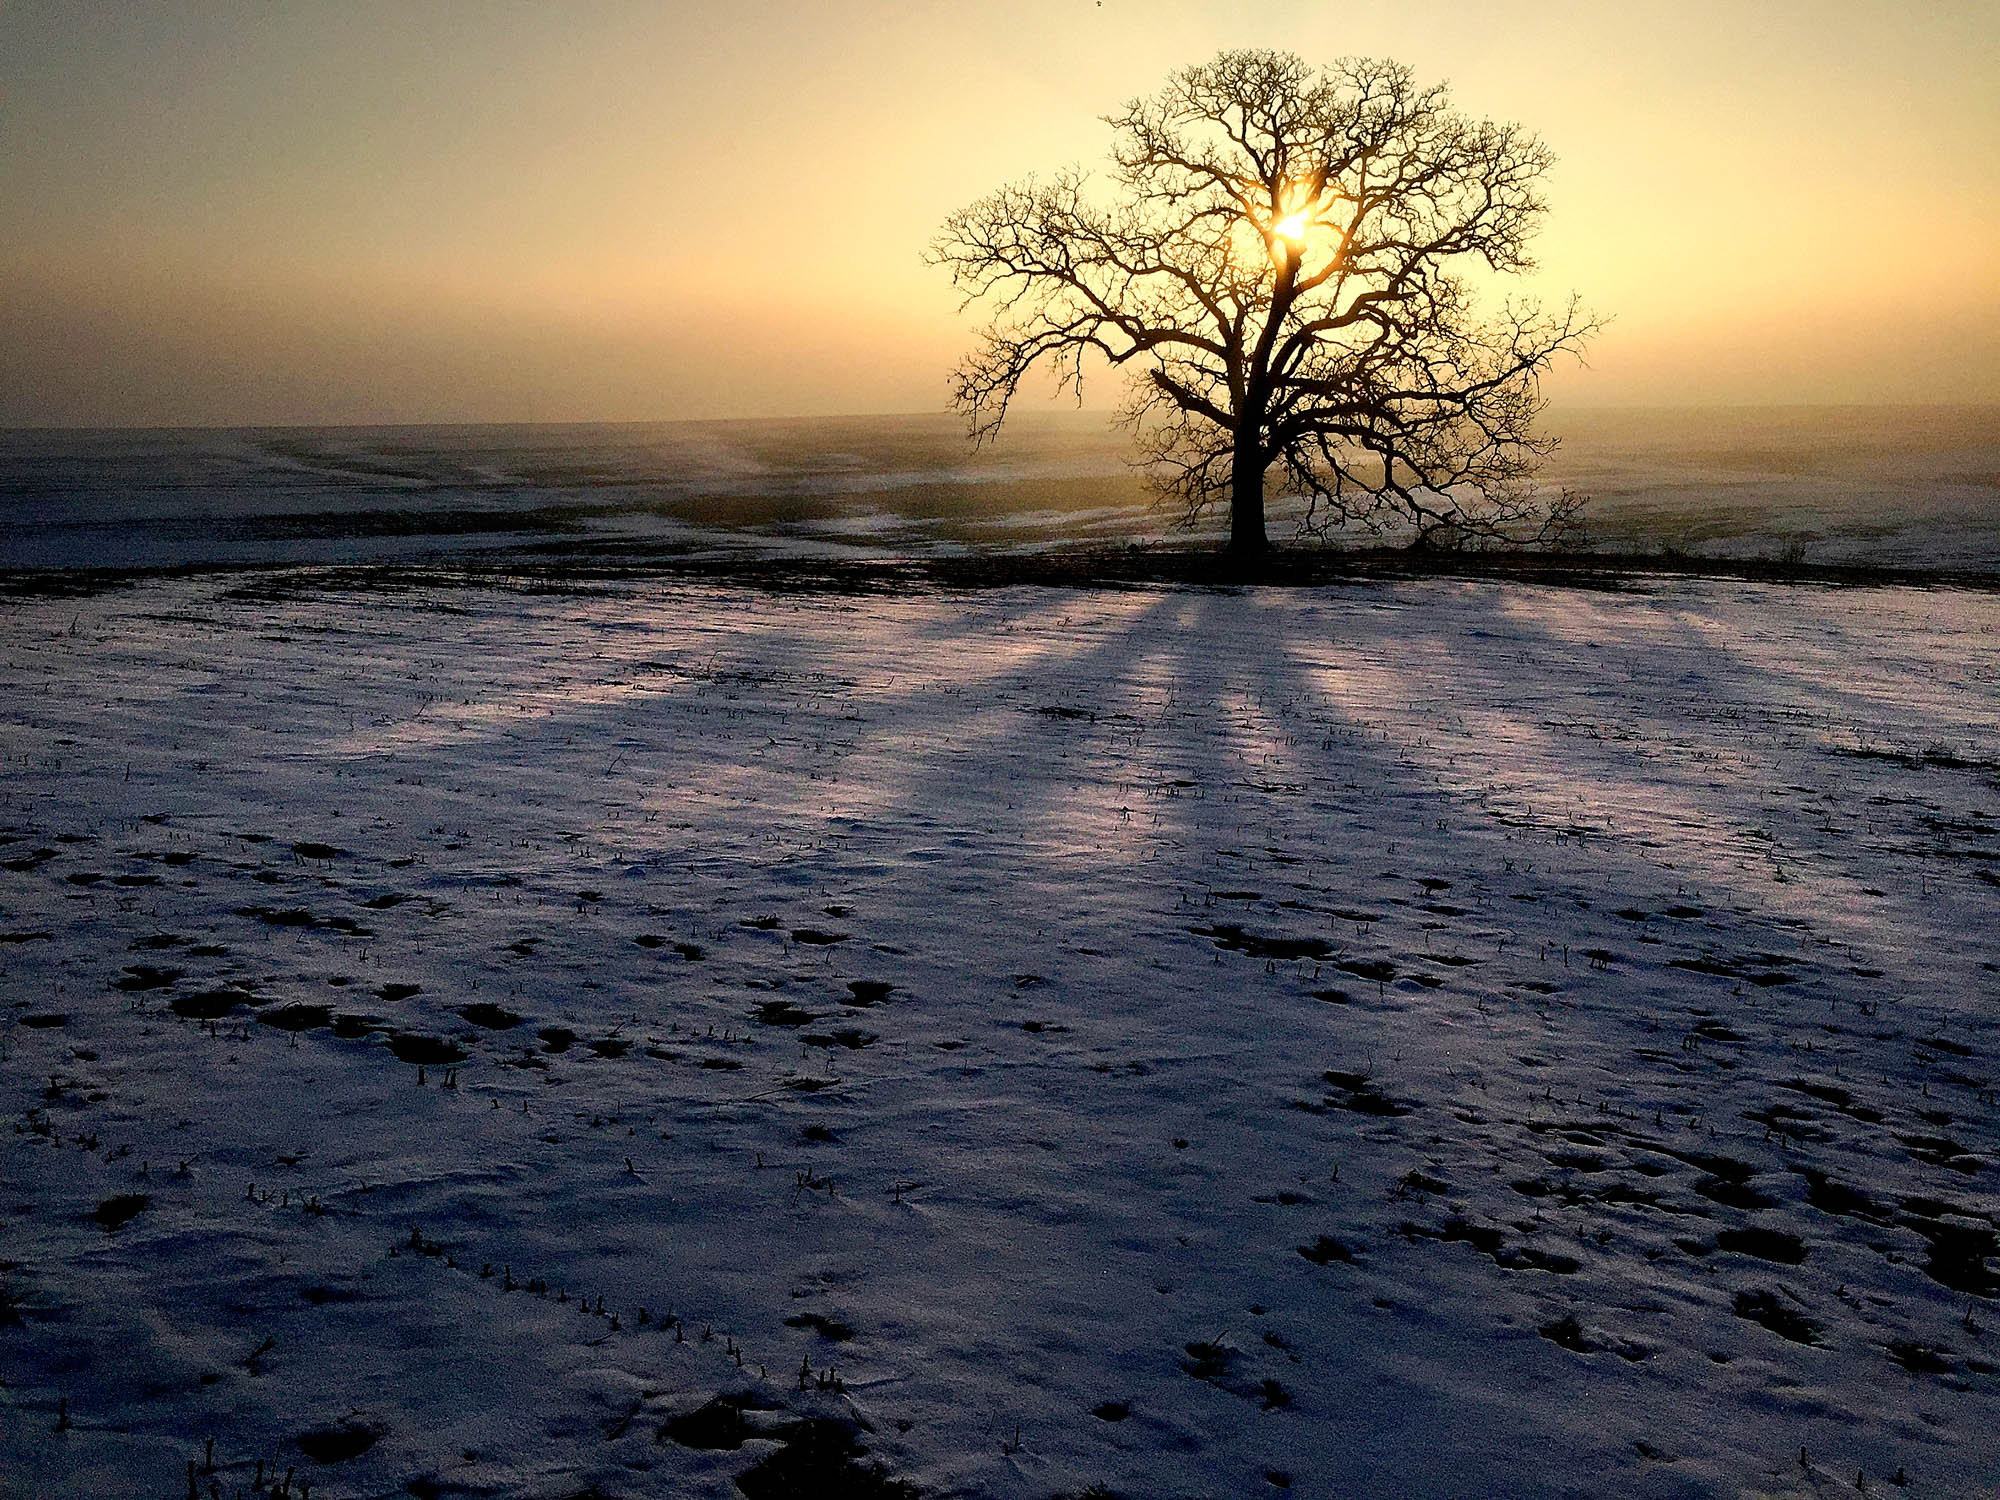 That Tree is an ancient Bur Oak growing on the edge of a cornfield near Platteville, WI. Using only his iPhone 4S, Mark Hirsch photographed the tree every day from March 24, 2012 until March 23, 2013 capturing a year long snapshot of life in and around the ancient oak. Today, Hirsch still photographs his storied tree with an iPhone sharing the images on Facebook and Instagram. <em>Mark Hirsch (Mark Hirsch Photo LLC)</em>